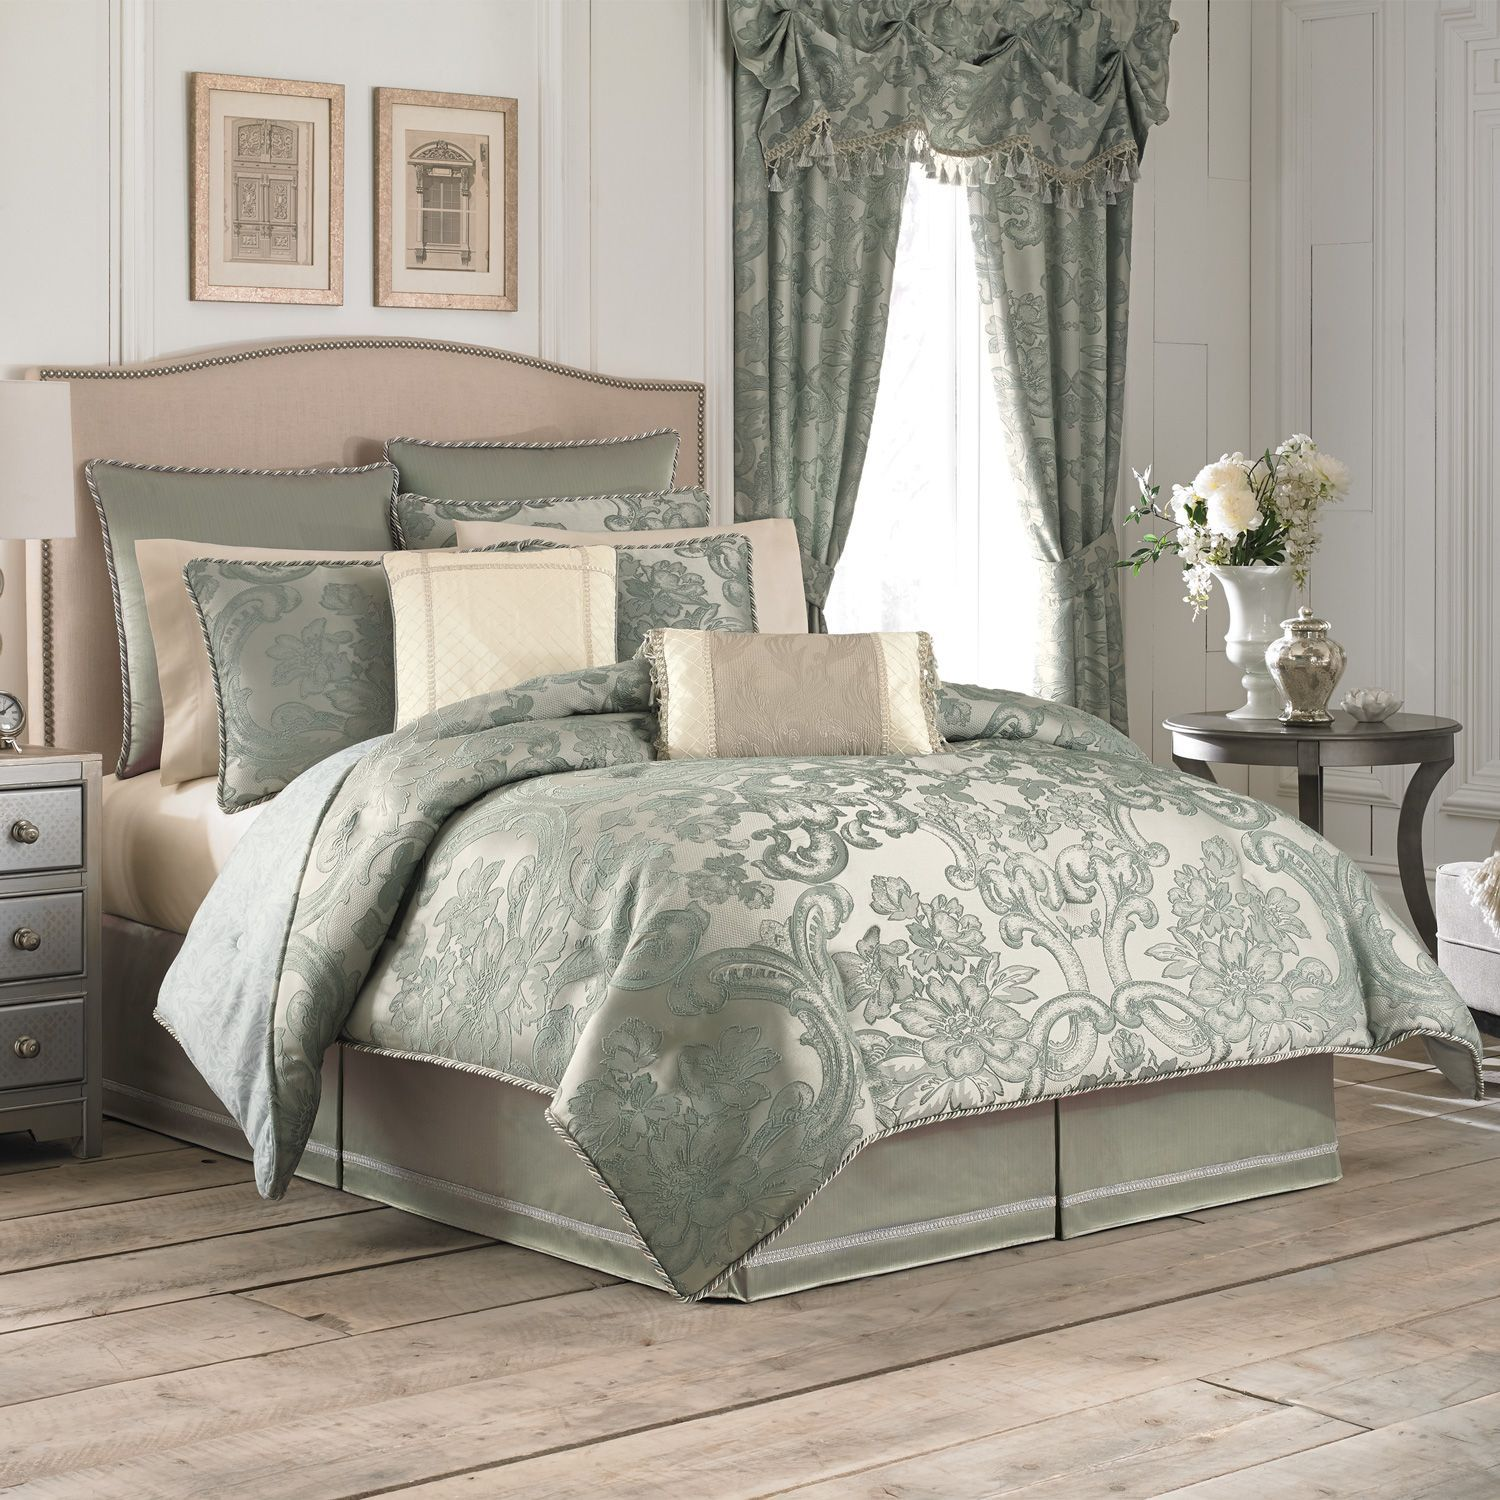 Bedspreads And Comforters King Size King Size Comforter Sets